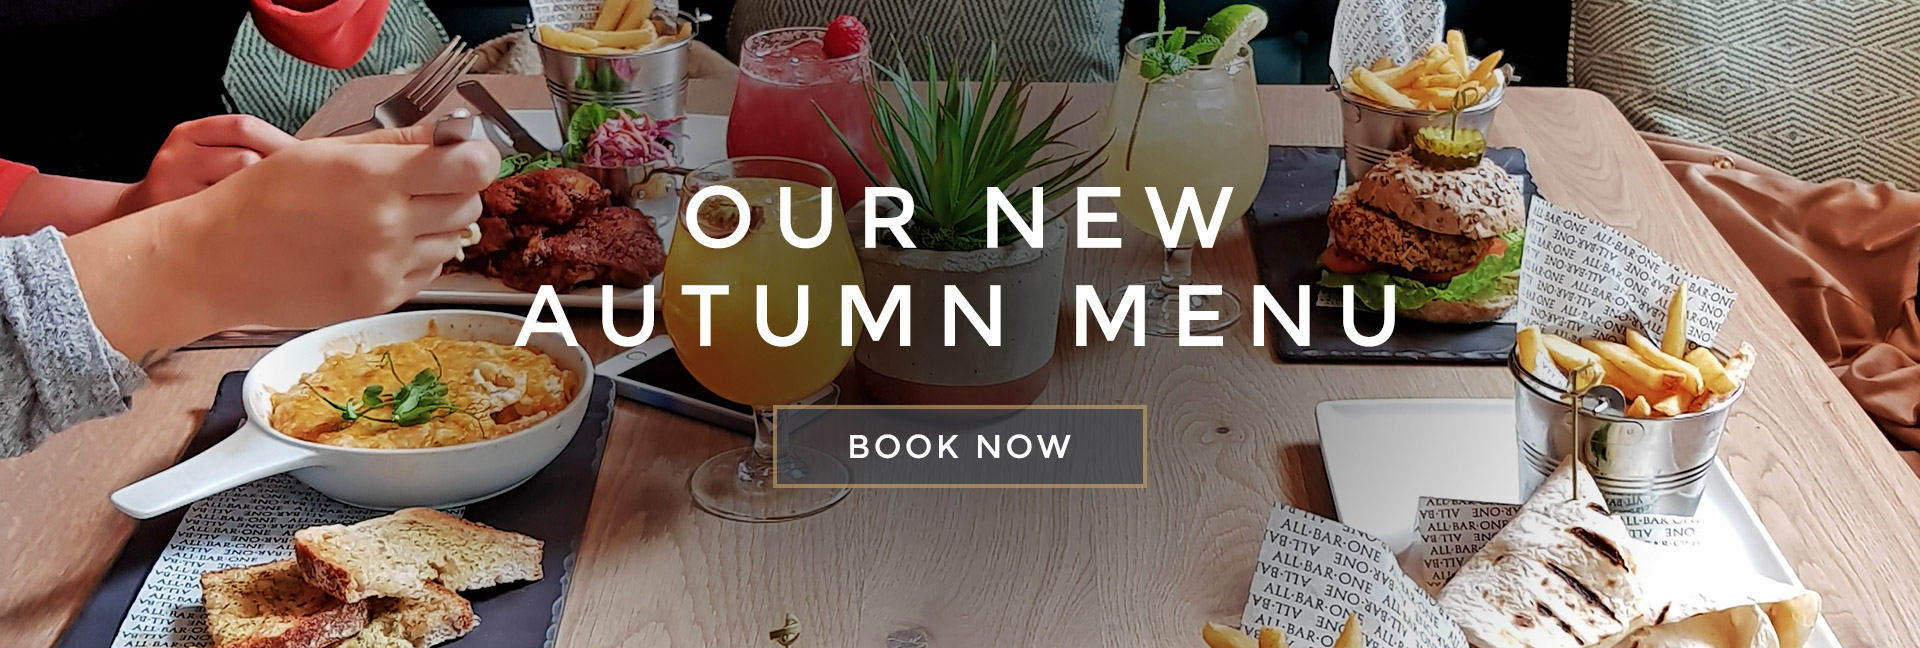 Our new Autumn menu at All Bar One Regent Street - Book now